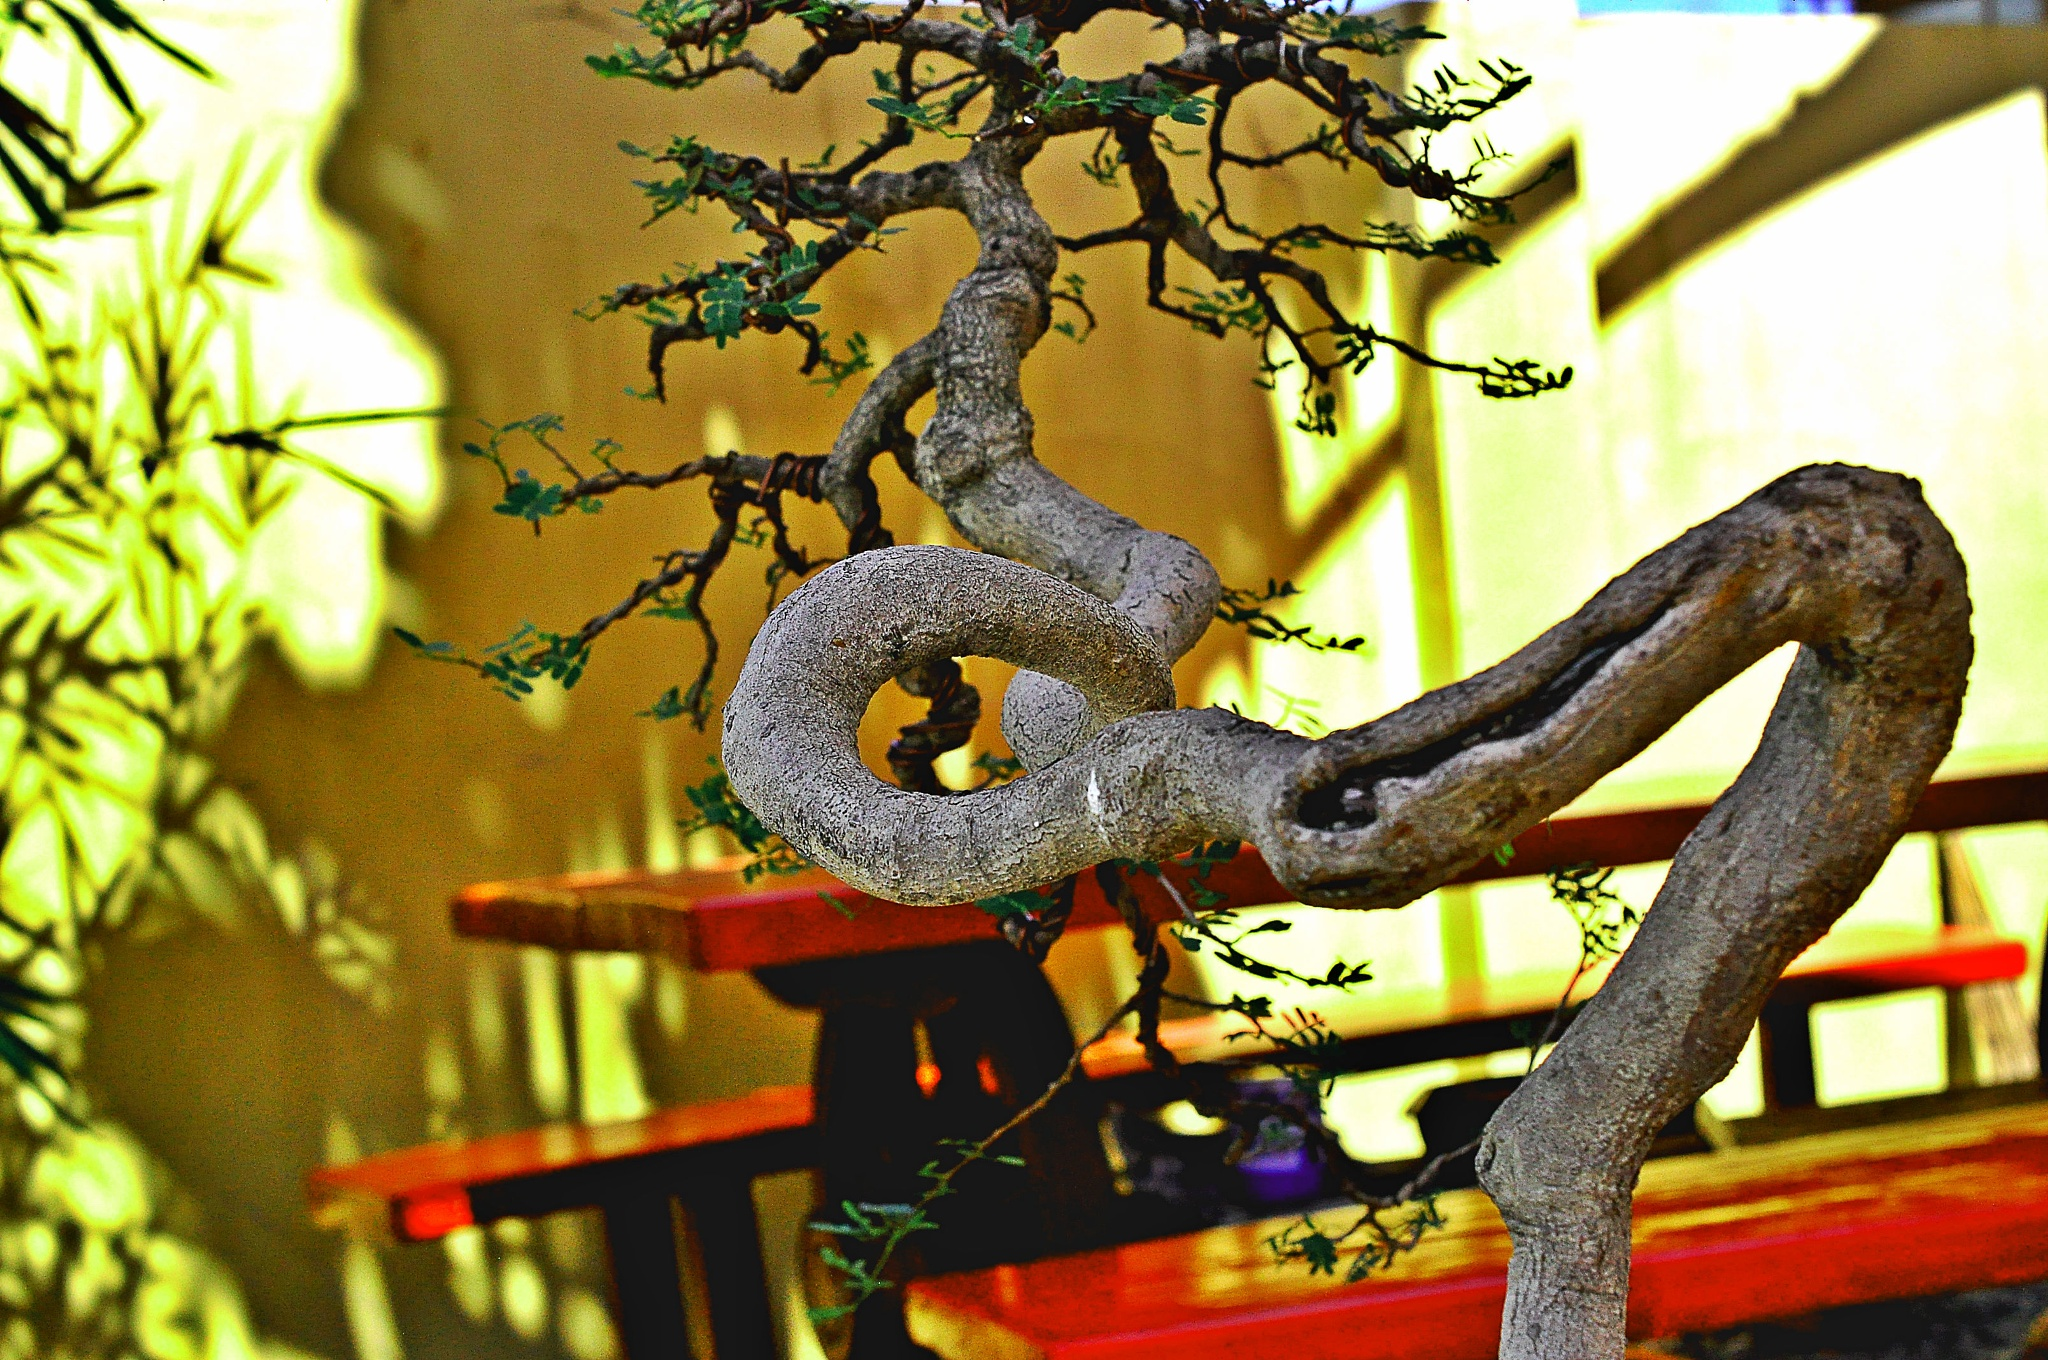 Reticulated tamarind bonsai by Rudy Tarrazona Guacena